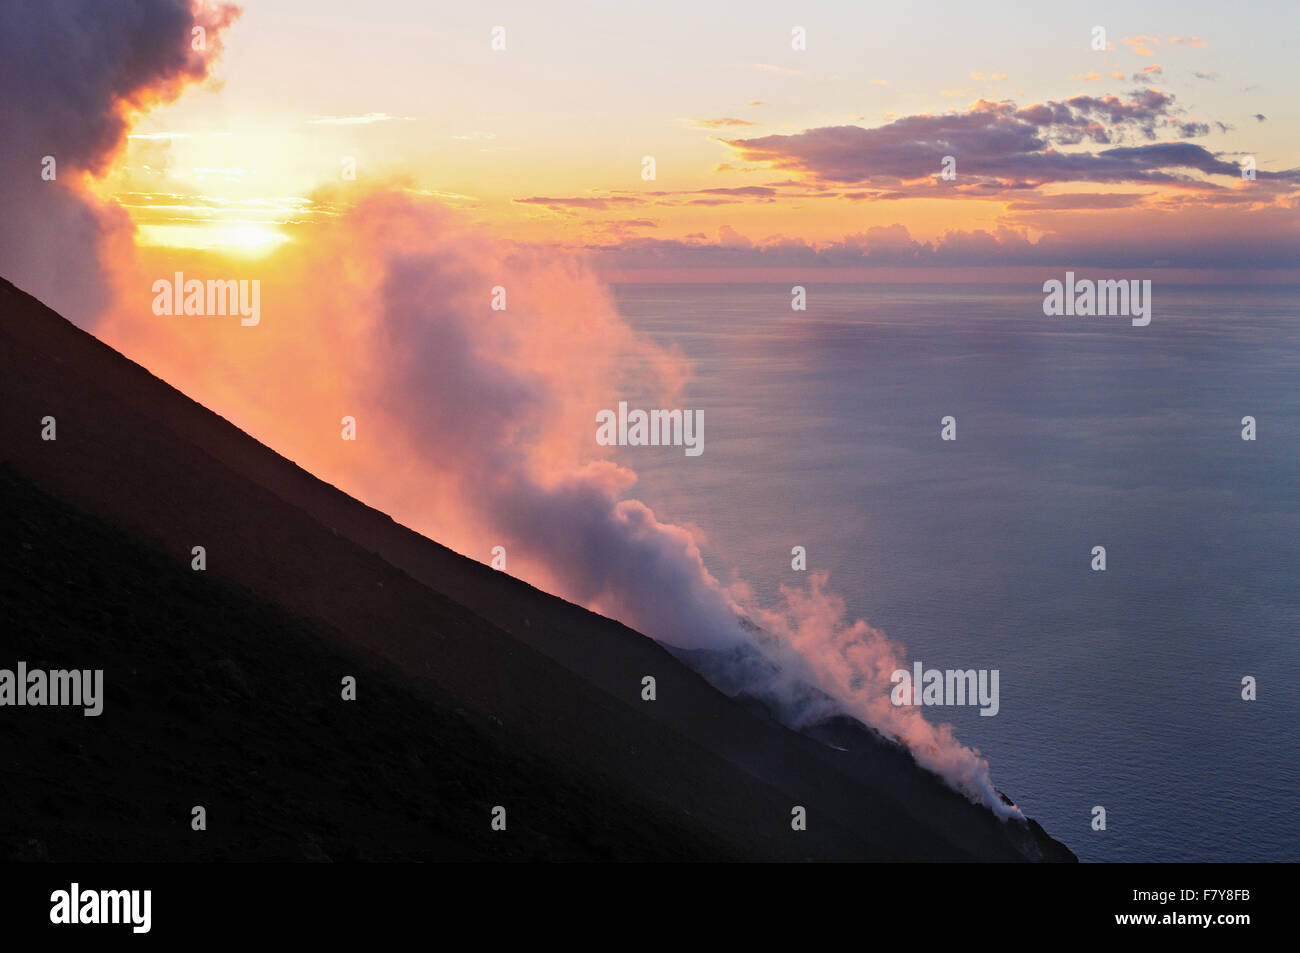 Fumaroles on the top of Stromboli volcano at sunset, Aeolian Islands, Sicily, Italy - Stock Image